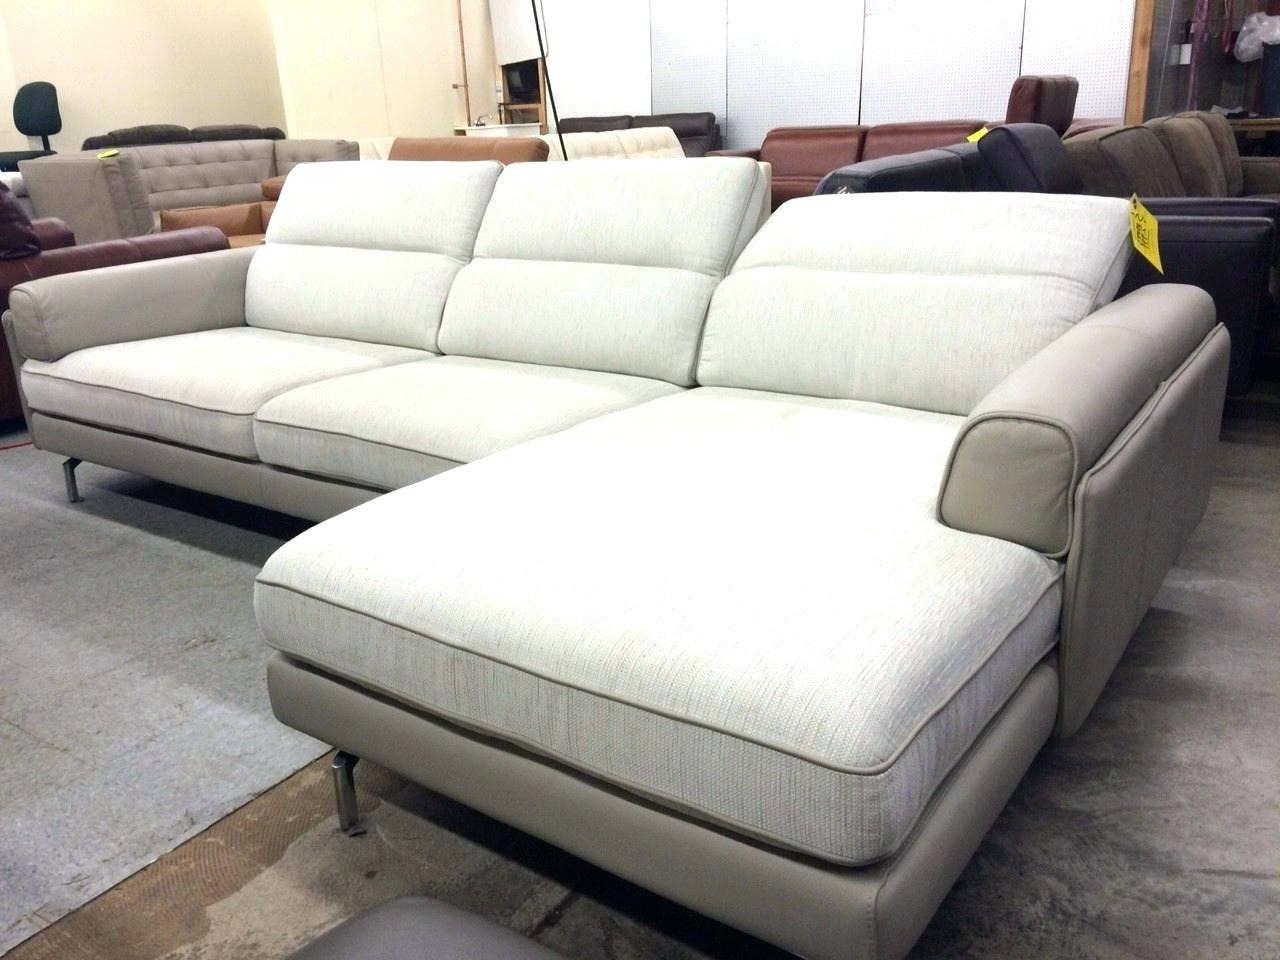 Most Recent Double Chaise Sectional Sofas In Chaise : Wide Chaise Sofa Sectional Extra Wide Chaise Sofa (View 11 of 15)